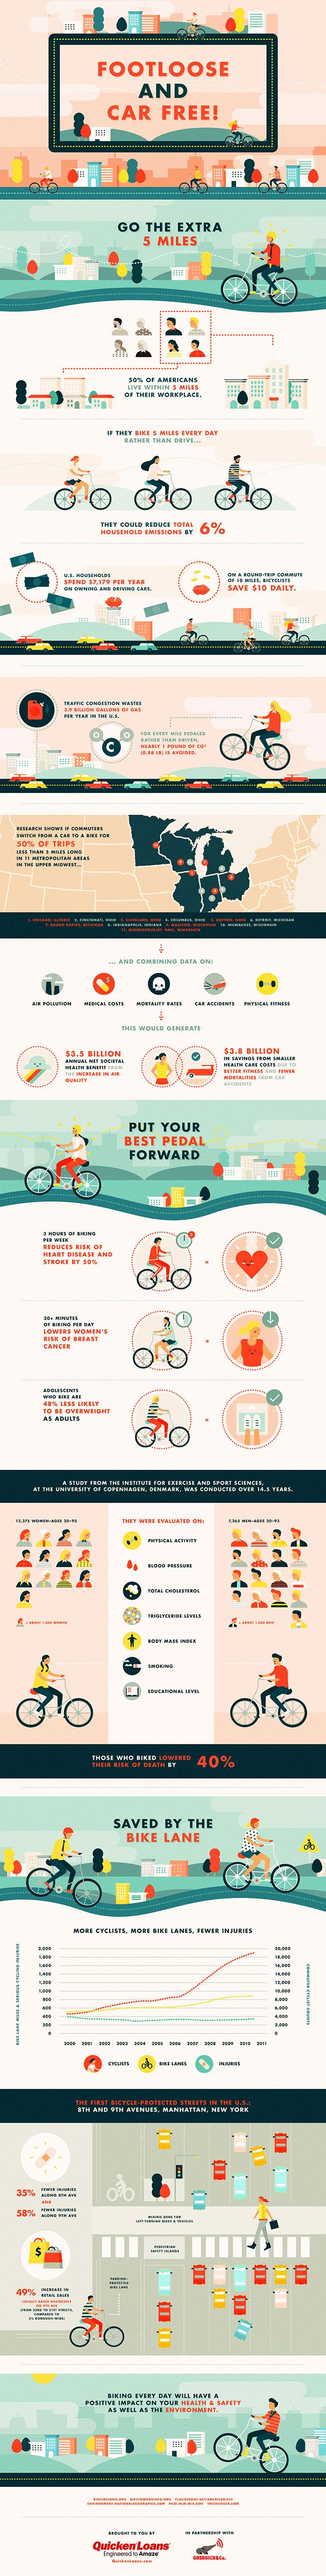 New Infographic: Footloose and Car Free  http://www.urbanistdispatch.com/2014/03/footloose-and-car-free/